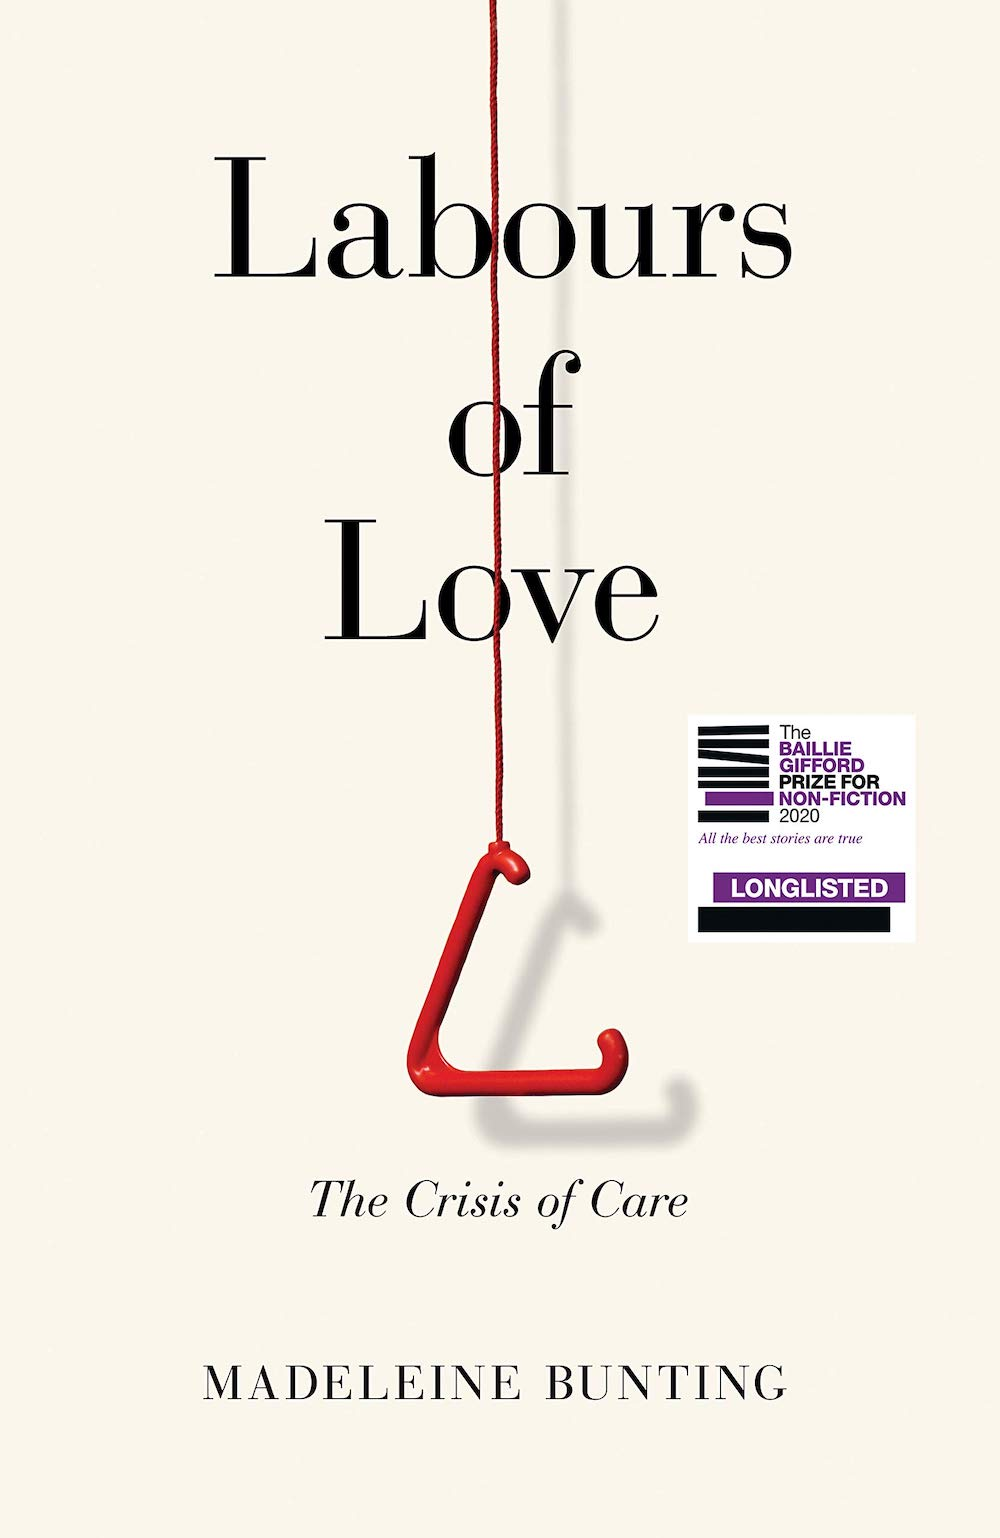 Labours of Love by Madeleine Bunting